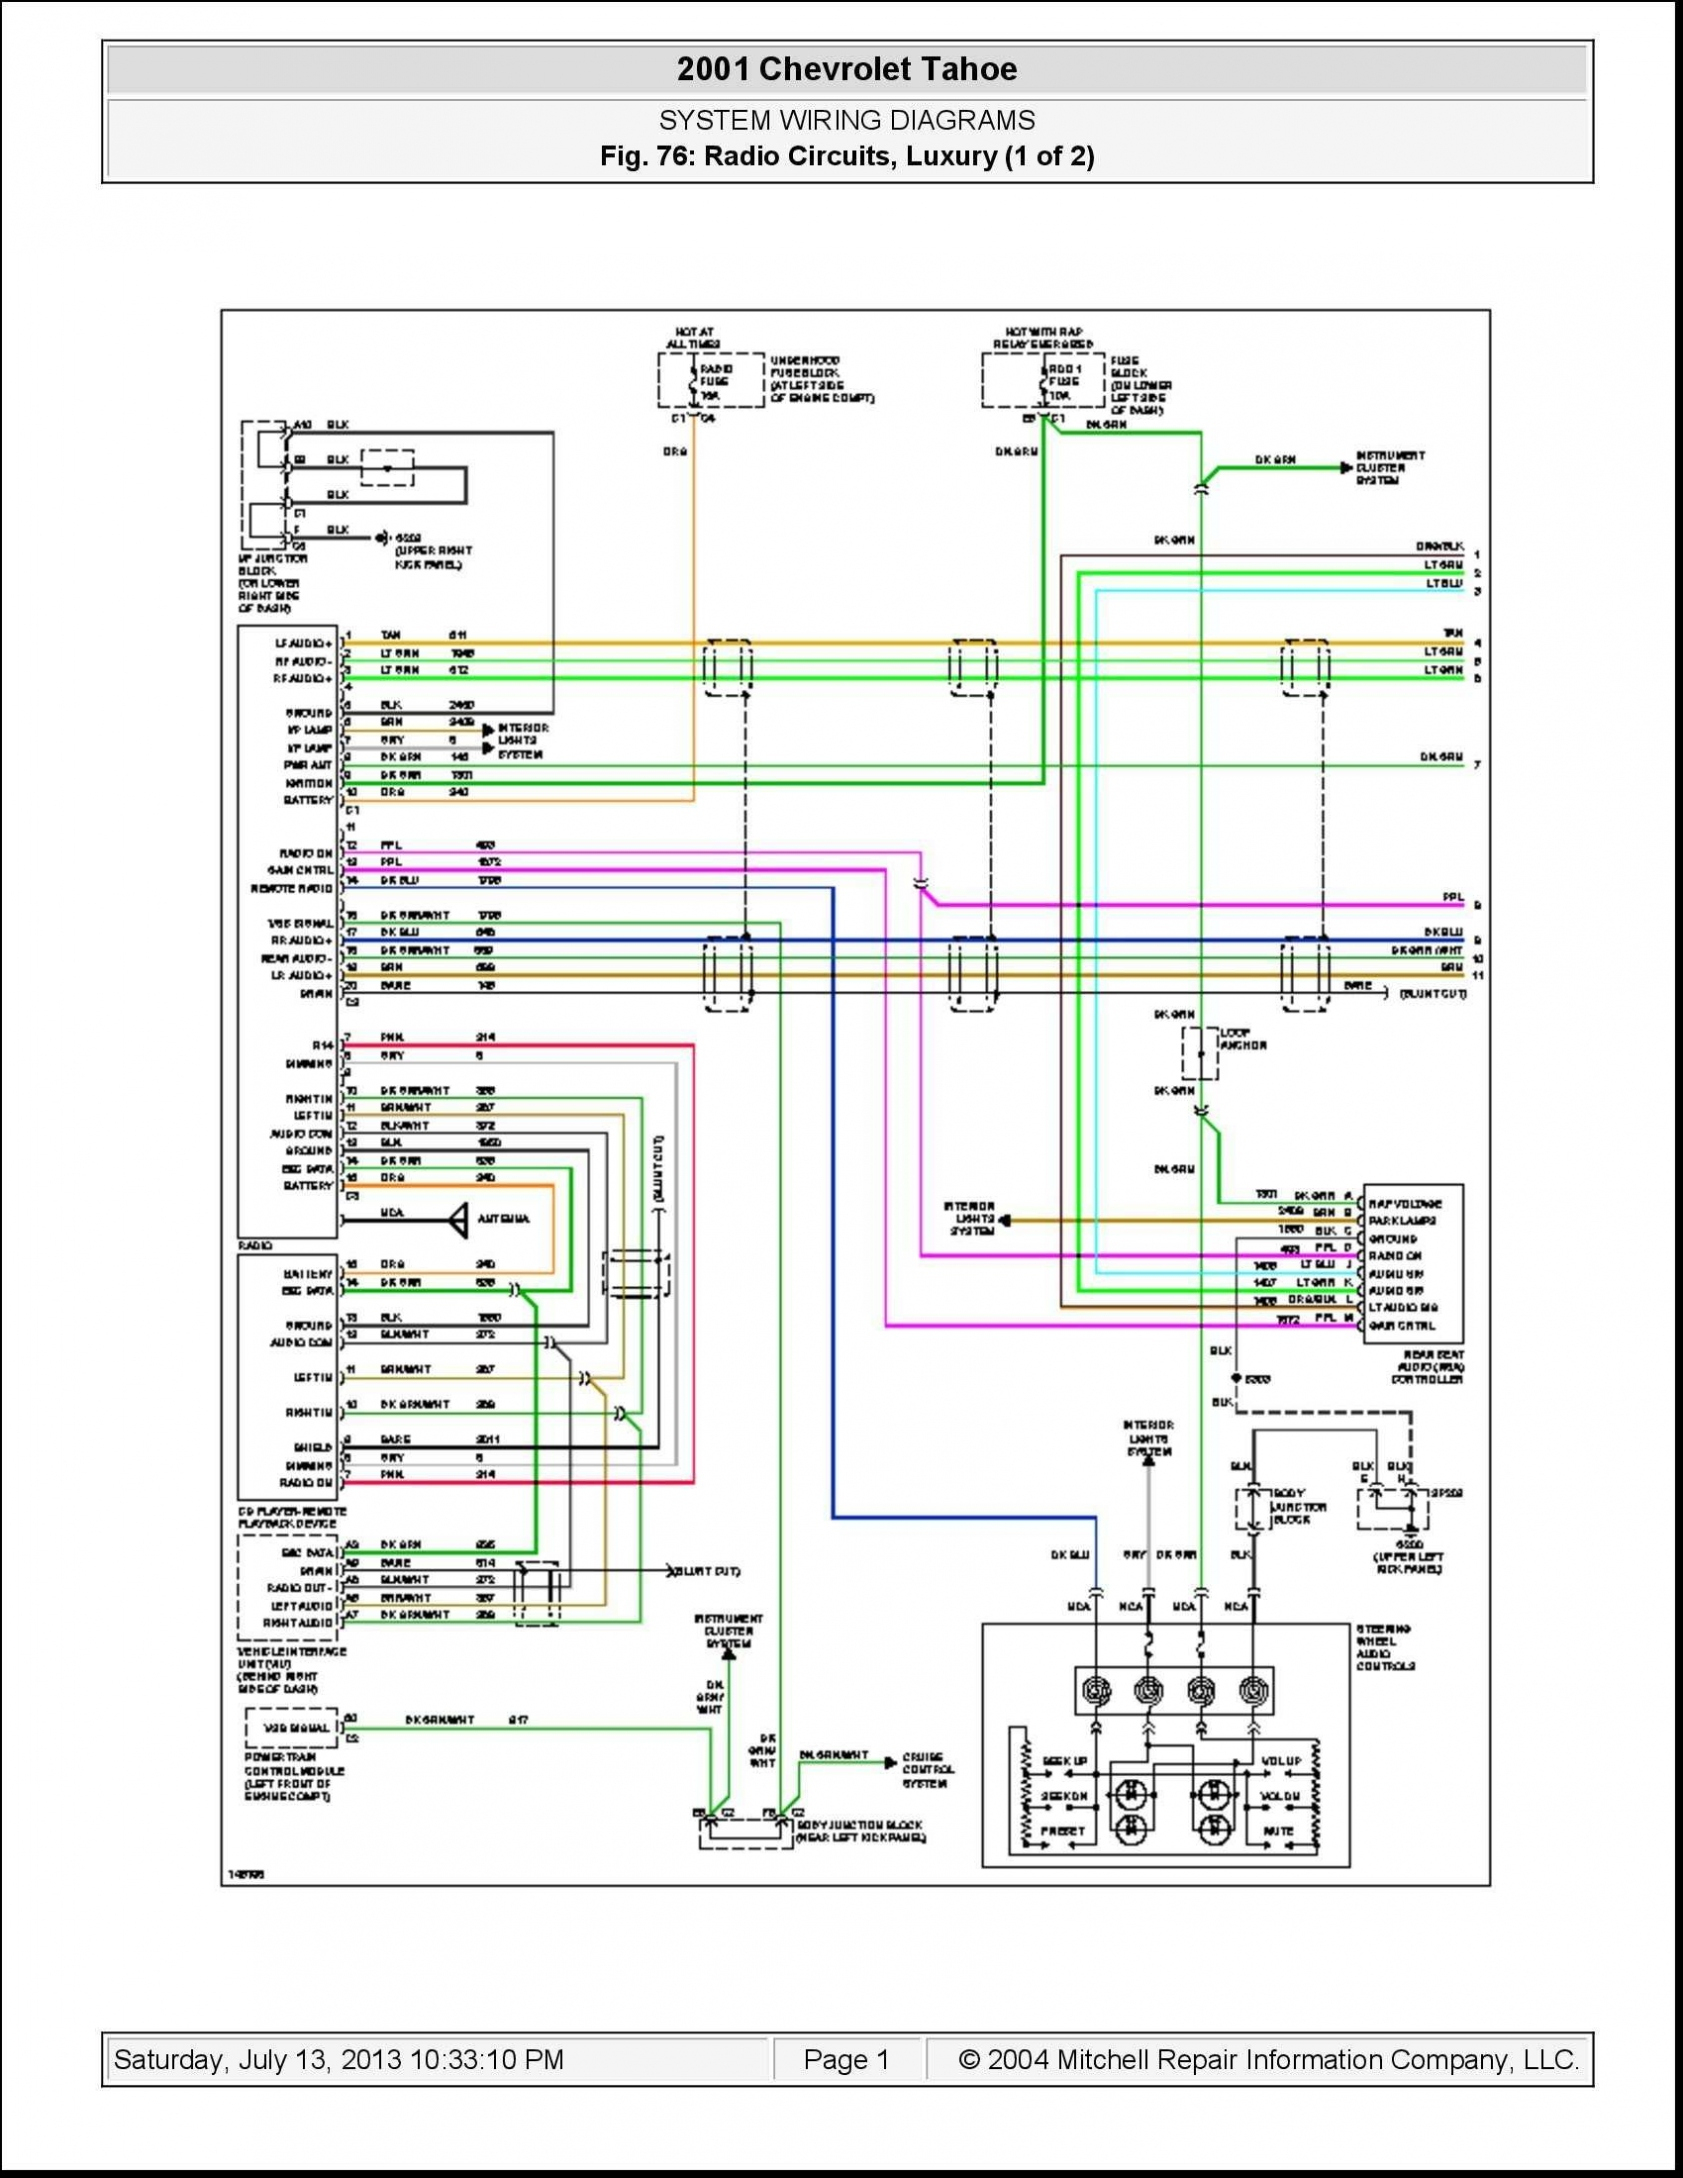 2004 Chevy Silverado Radio Wiring Harness Diagram Best 2005 Chevy - 2005 Chevy Silverado Radio Wiring Harness Diagram